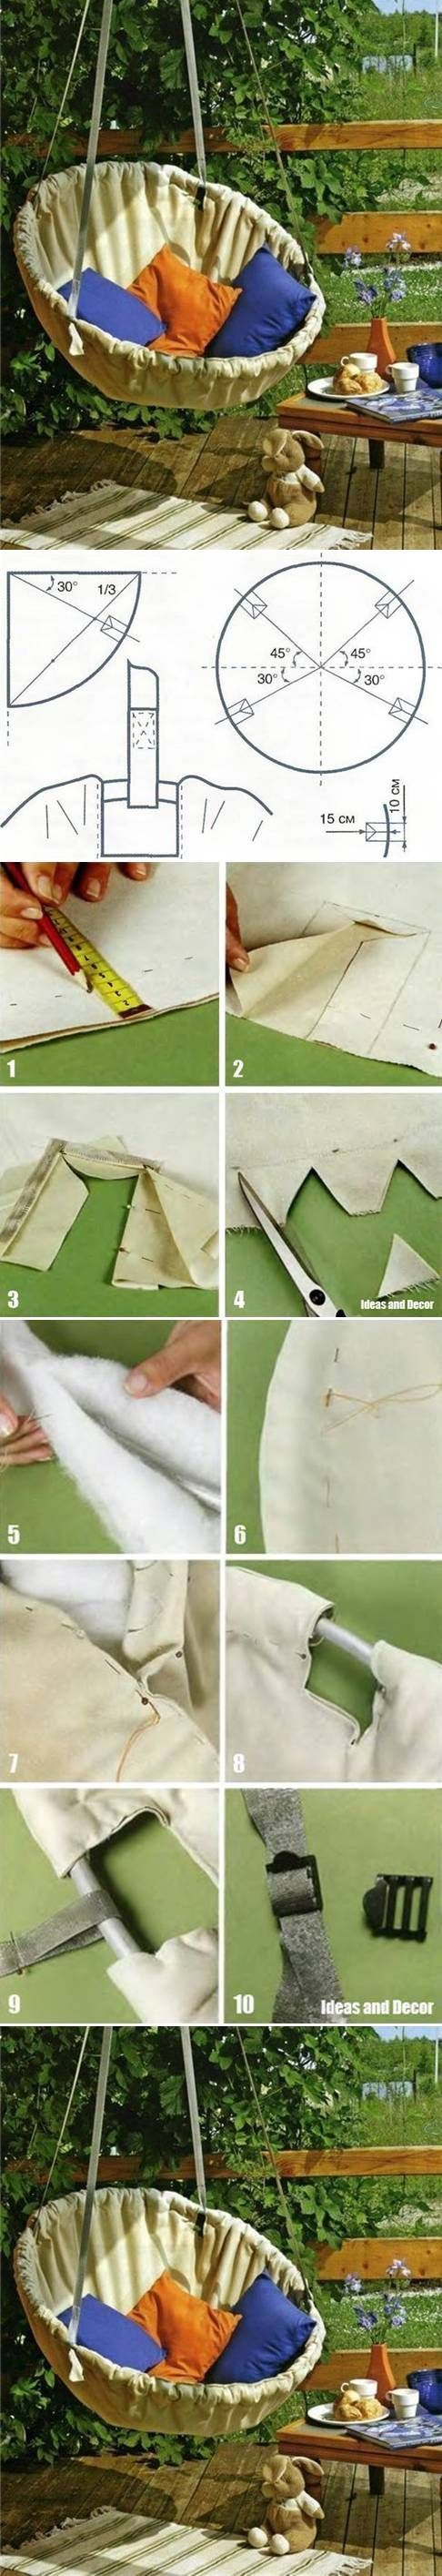 How to Make Hammock Chair step by step DIY tutorial instructions #ChairDIY